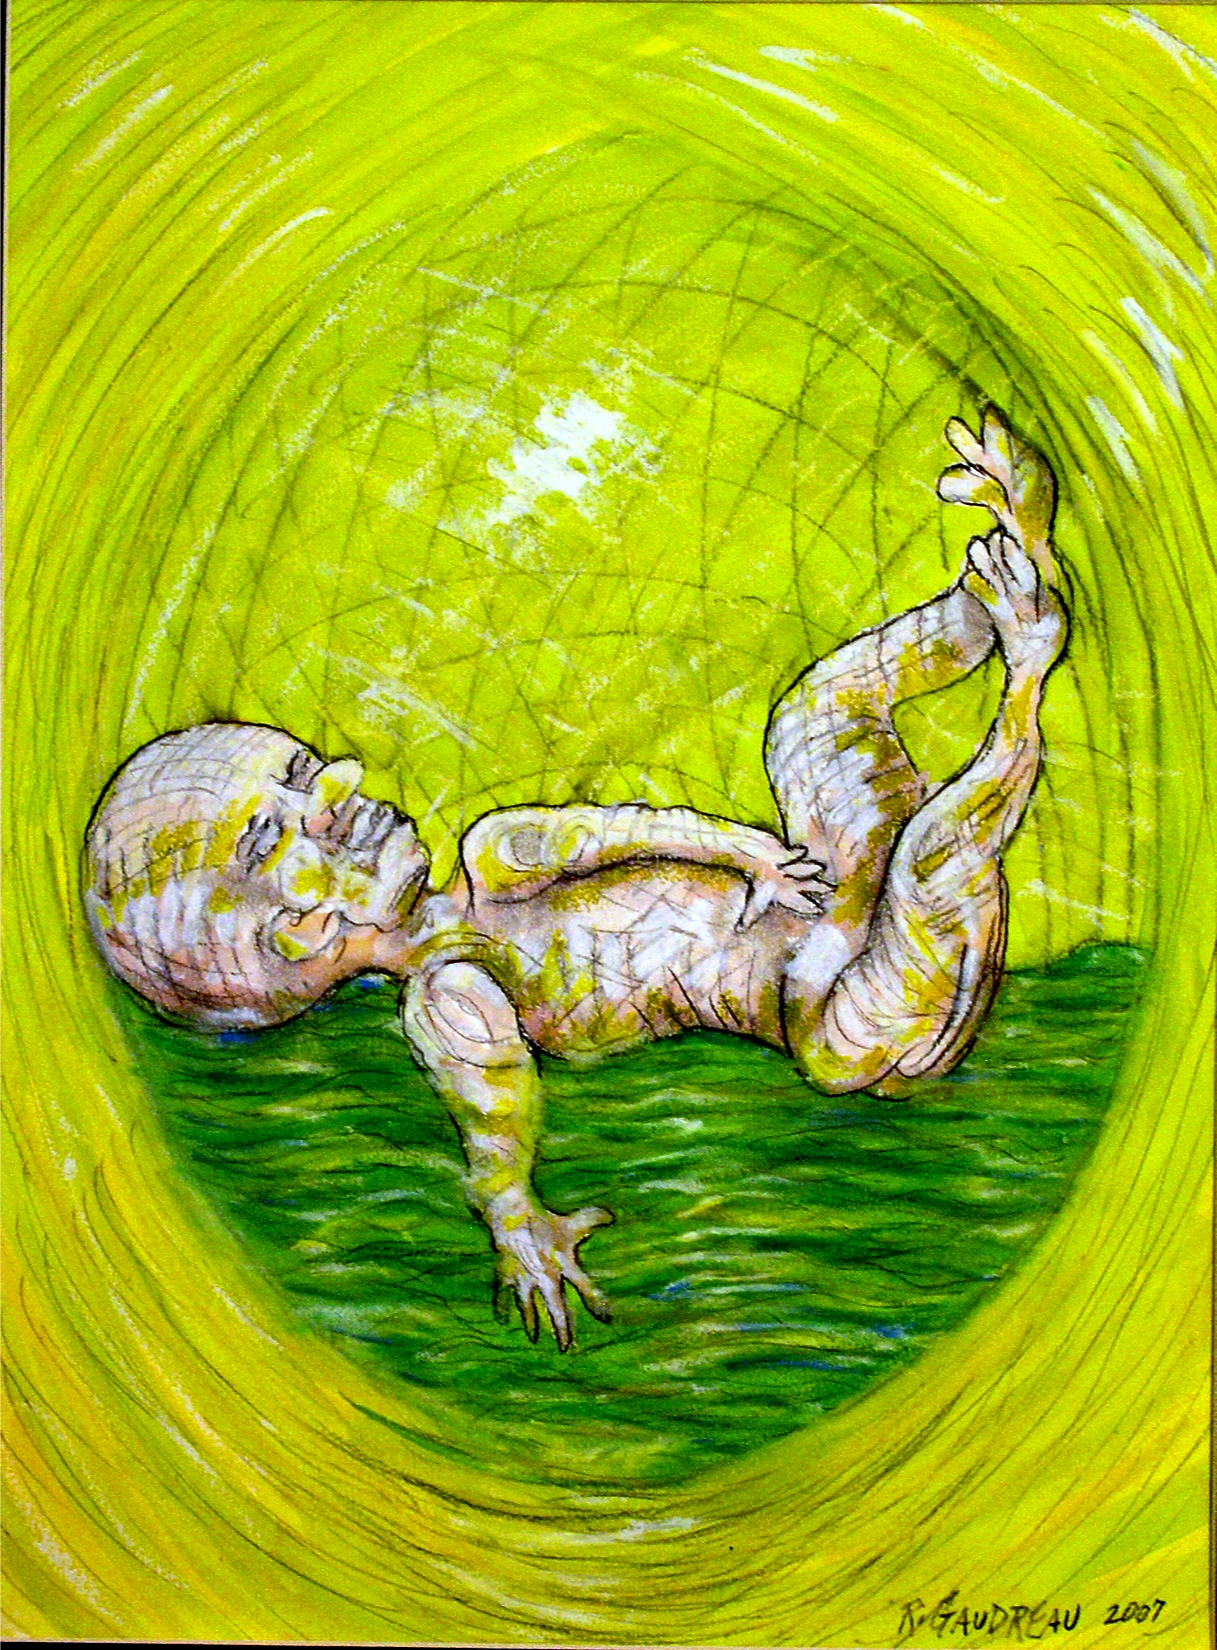 My Daughters Embryonic State Floating    2007 Gouache, Oil Pastel mixed media painting on watercolor paper 16H x 12W inches